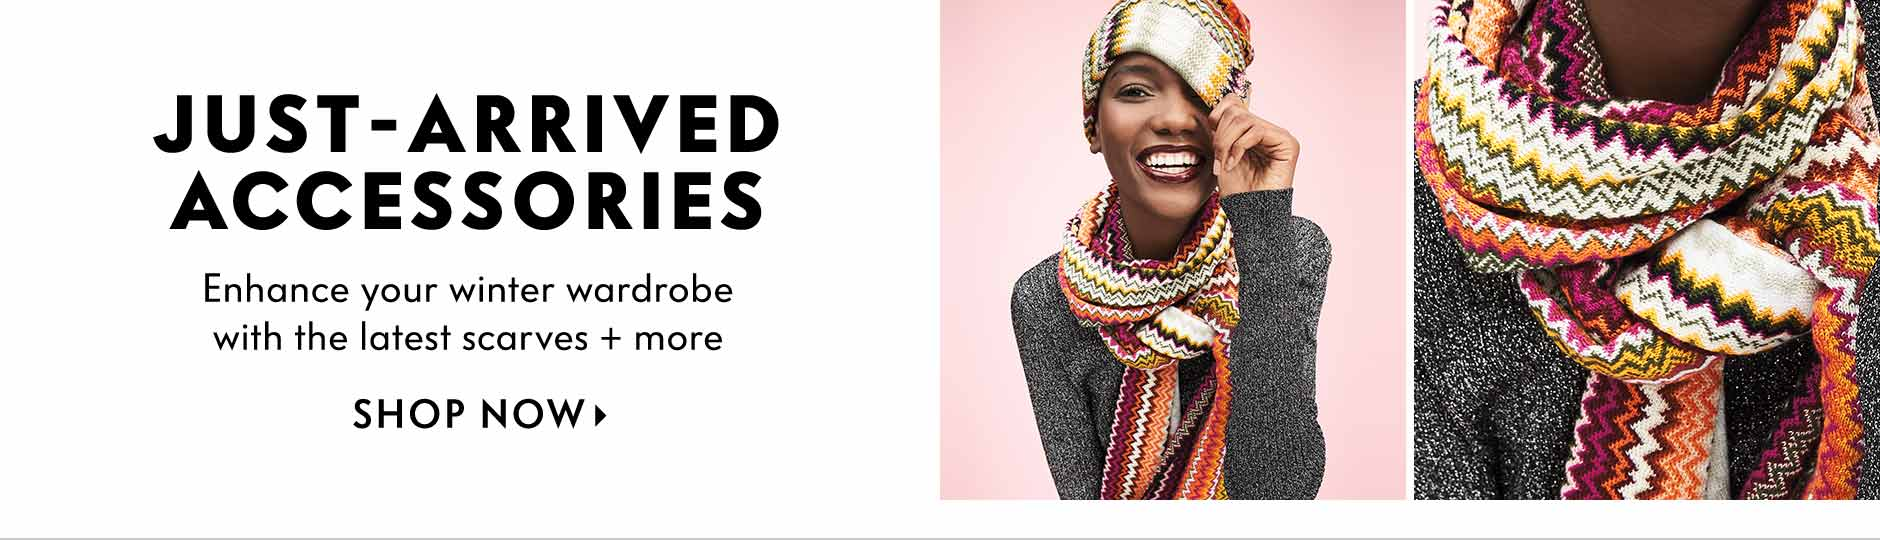 Just-Arrived Accessories, enhance your winter wardrobe with the latest scarves + more